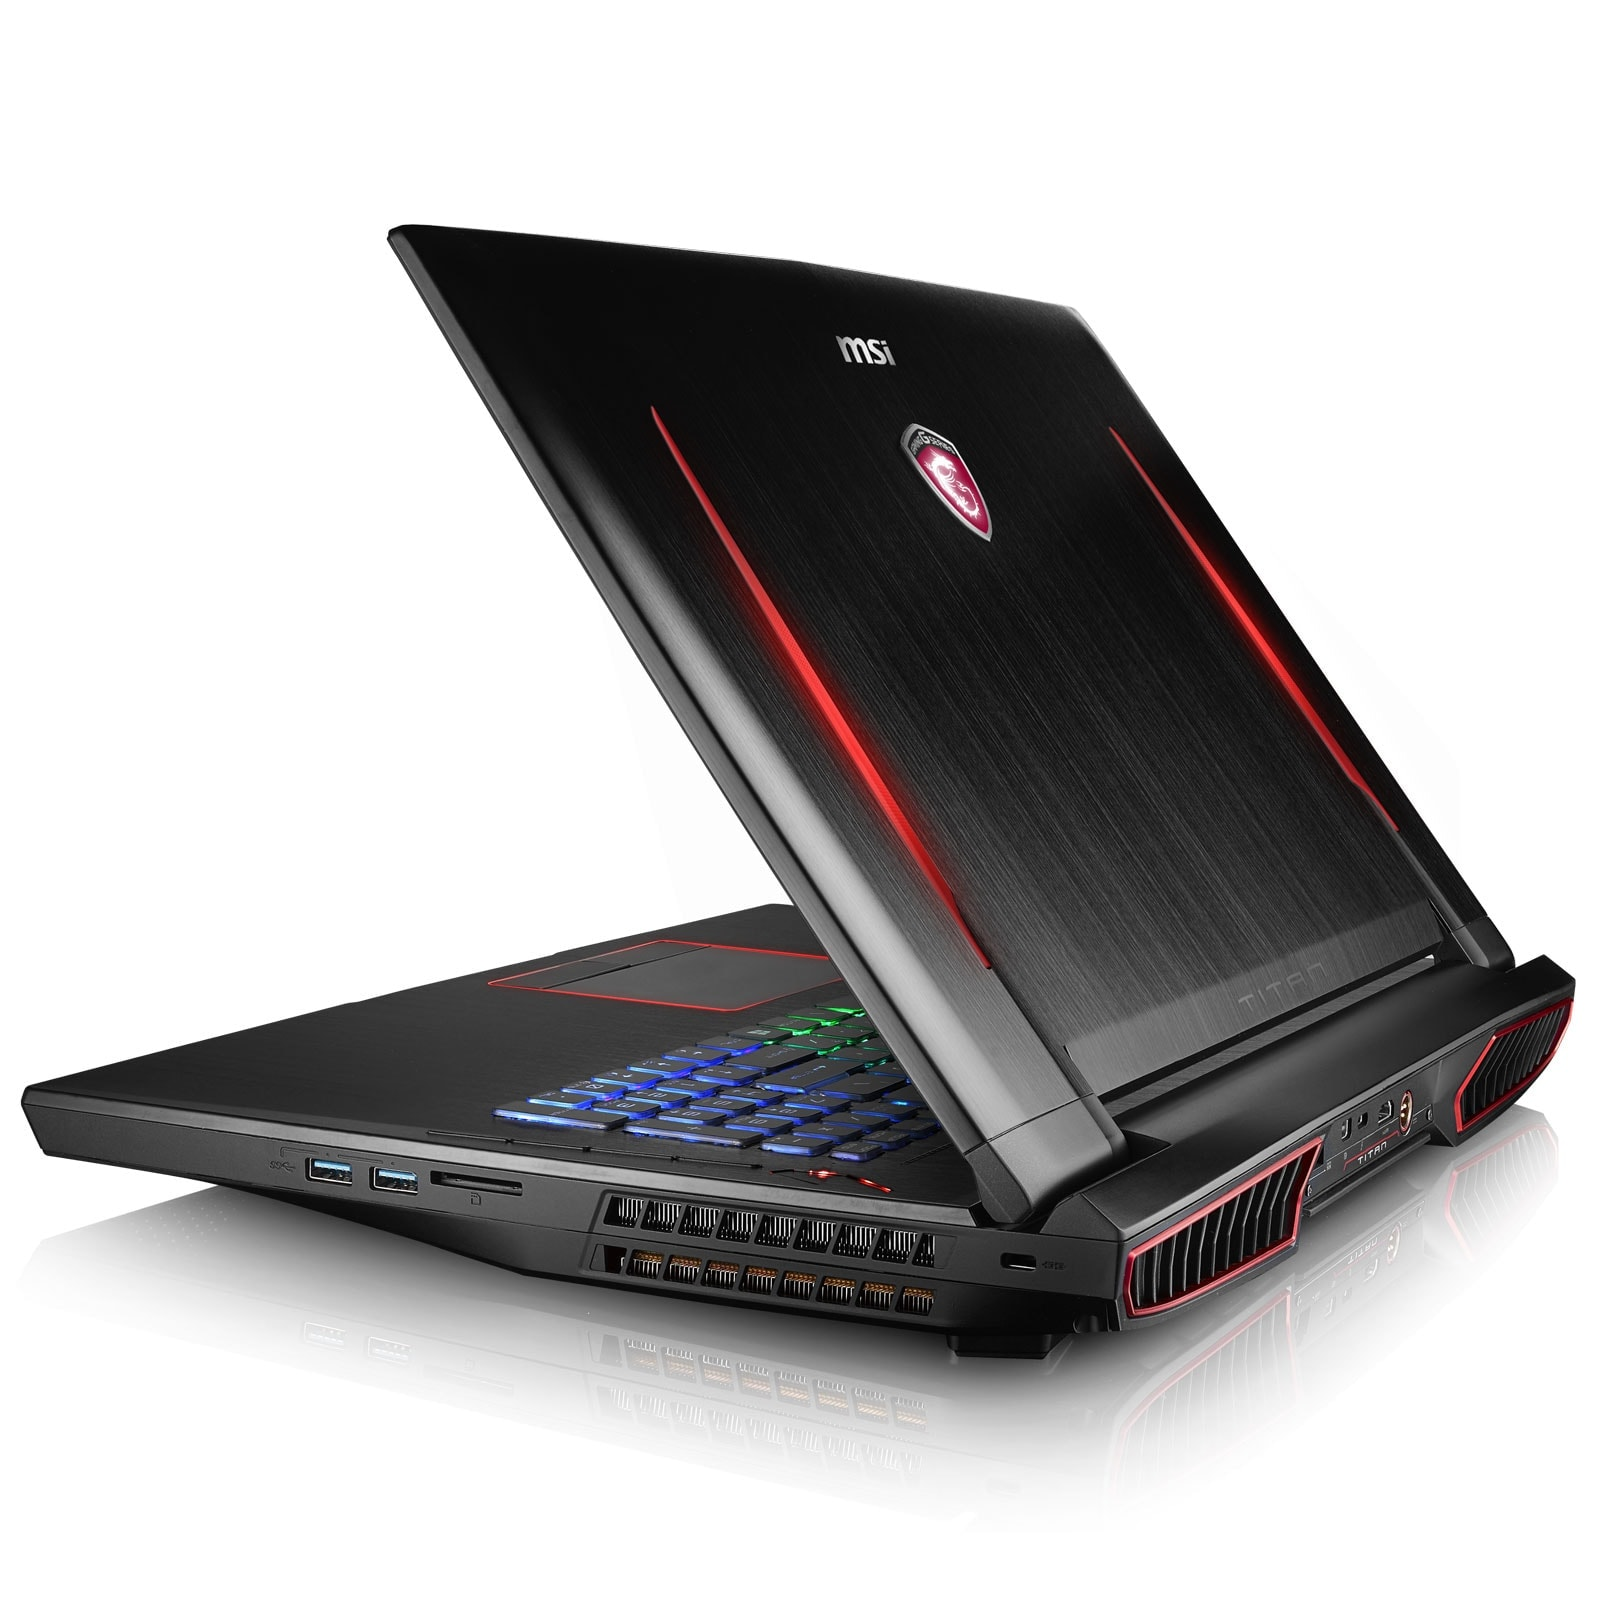 MSI 9S7-17A111-075 - PC portable MSI - Cybertek.fr - 3